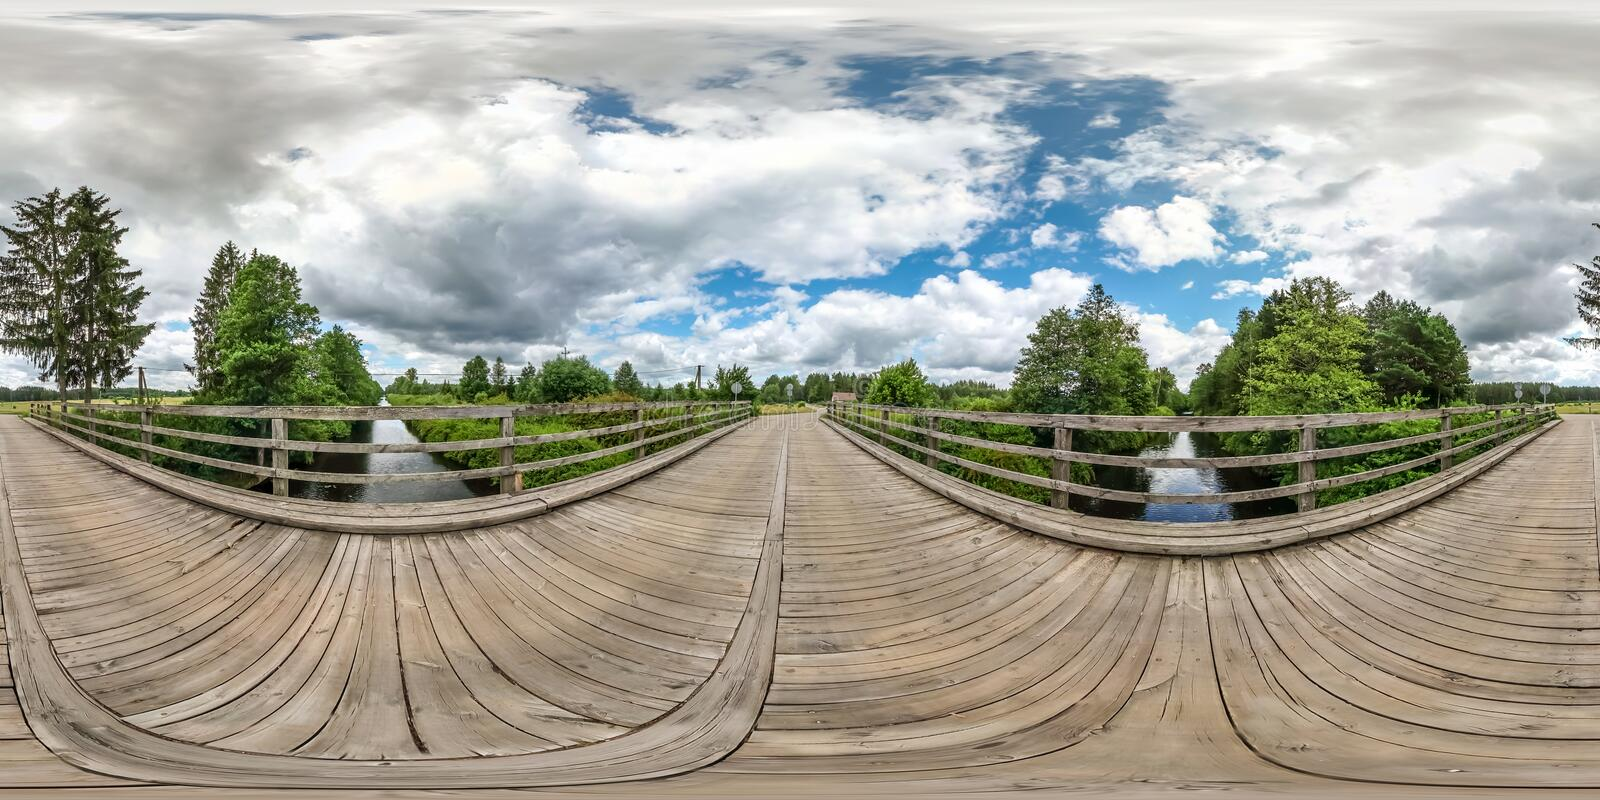 Full seamless spherical hdri panorama 360 degrees  angle view on wooden bridge over the river canal in equirectangular projection stock photography